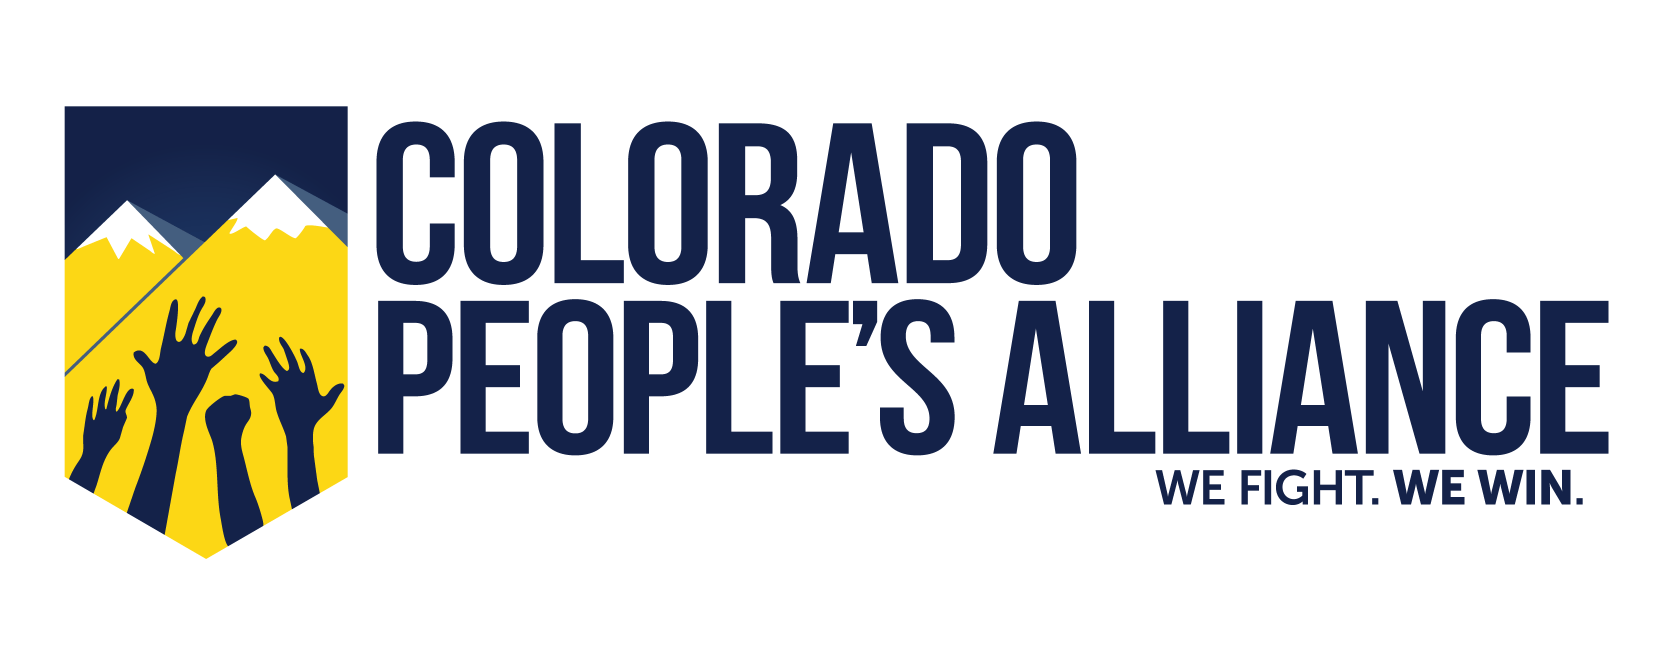 Colorado People's Alliance